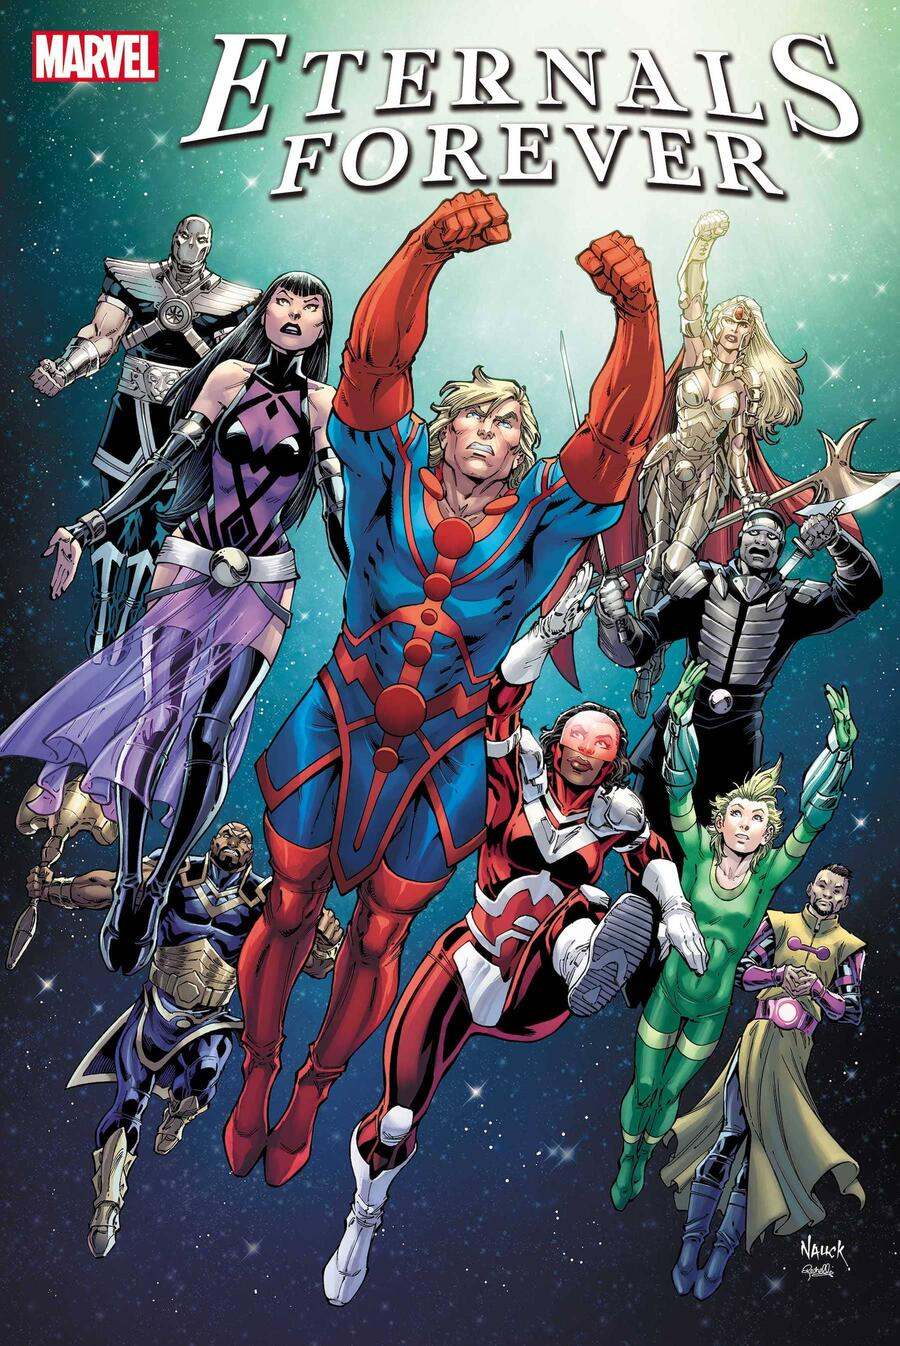 ETERNALS FOREVER #1 cover by Todd Nauck with colors by Rachelle Rosenberg